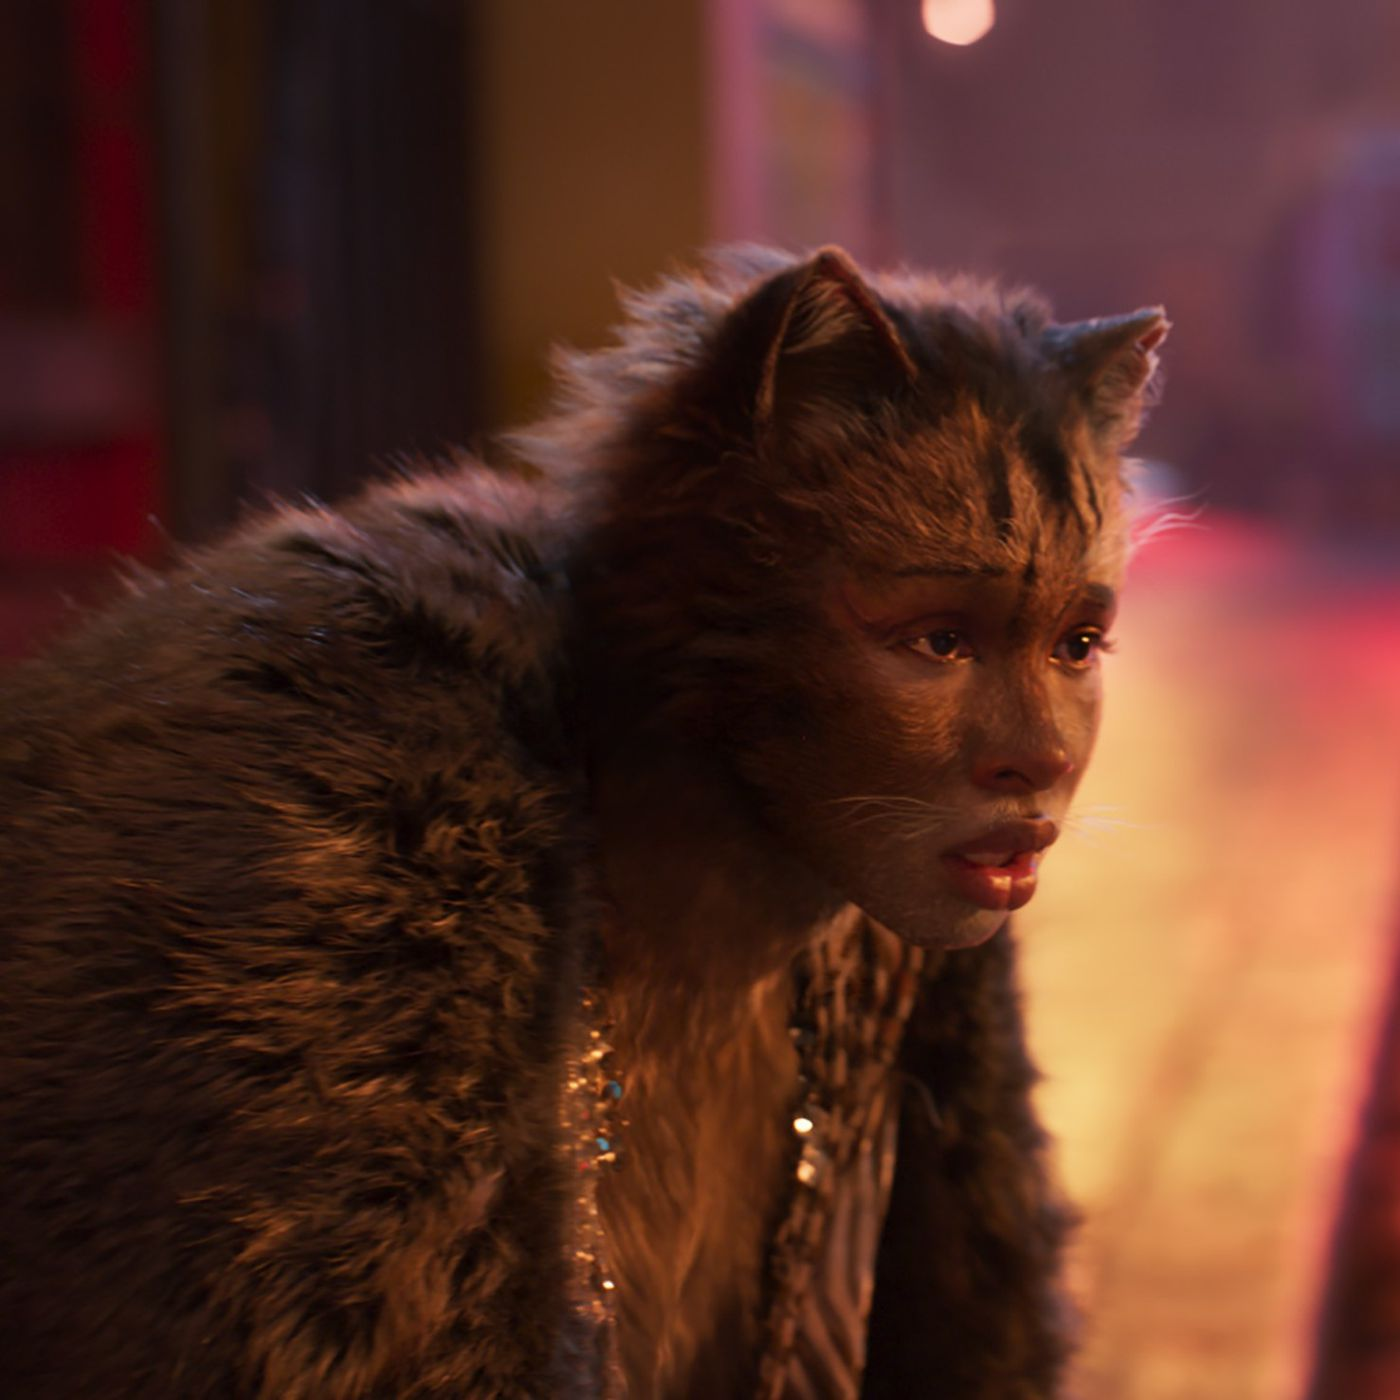 Cats Movie Review Musical Coughs Up A Hairball Of Self Indulgence And Creepy Human Feline Hybrids Chicago Sun Times